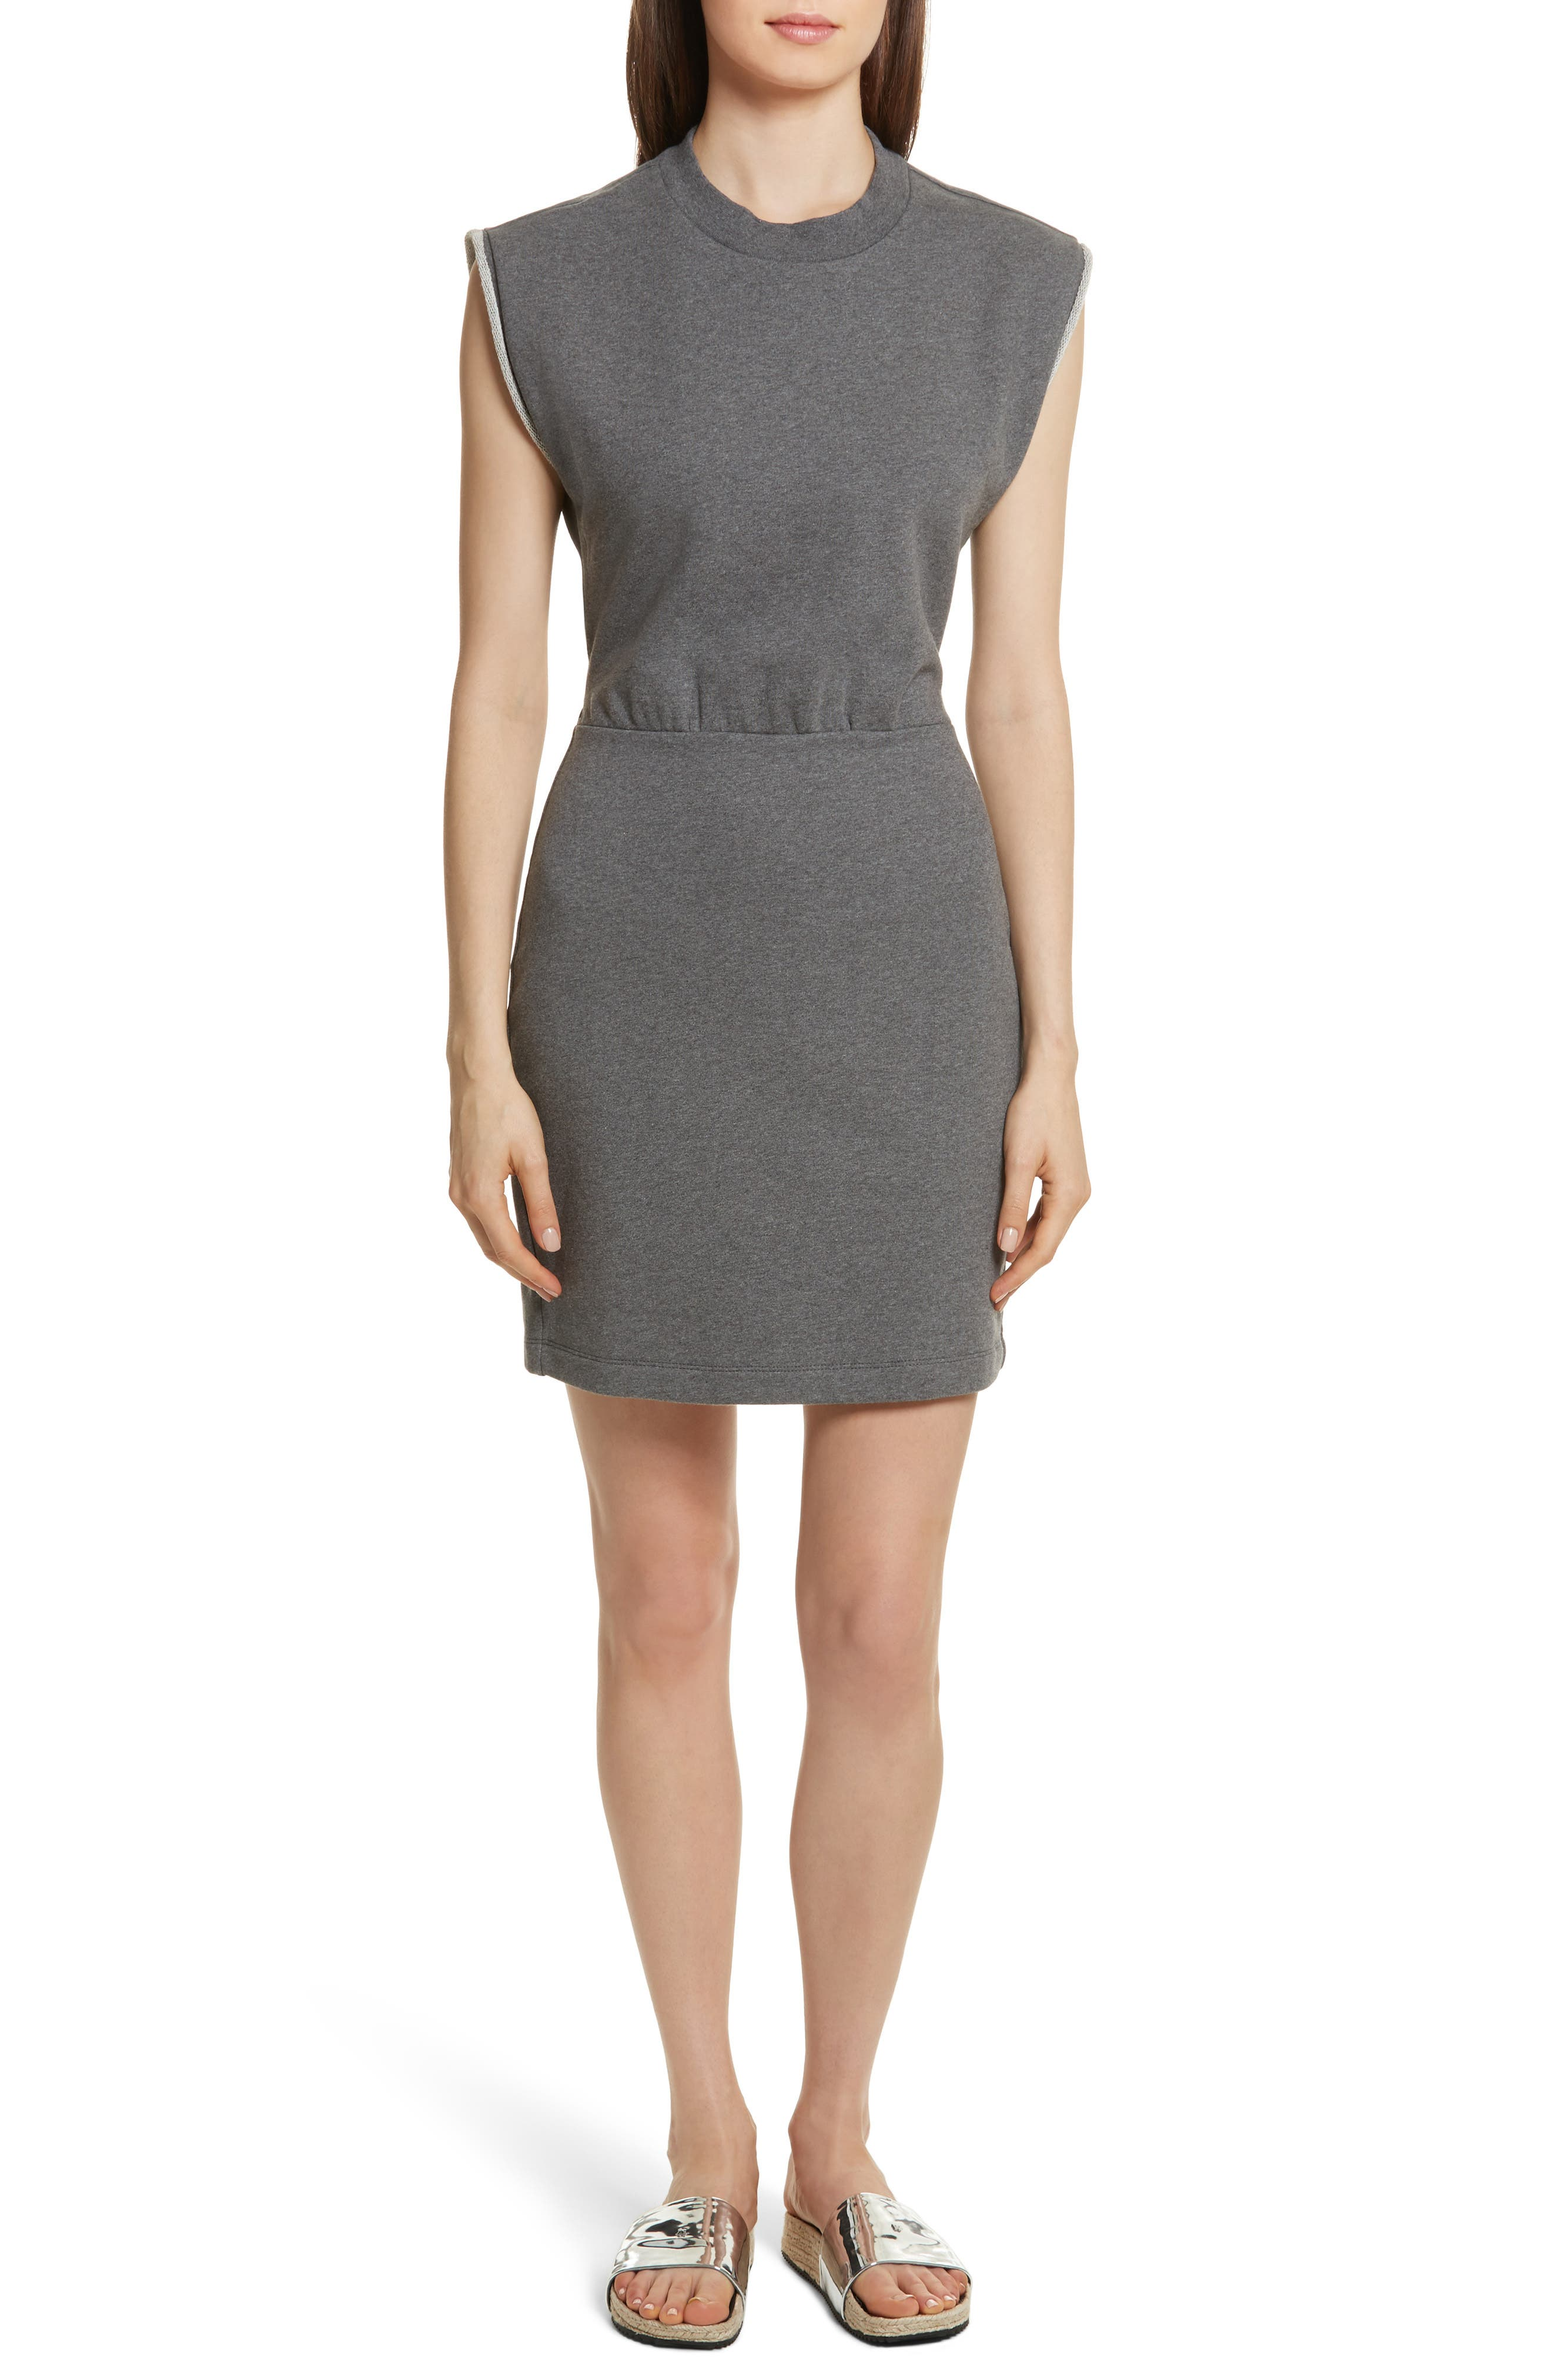 Alternate Image 1 Selected - T by Alexander Wang French Terry Dress